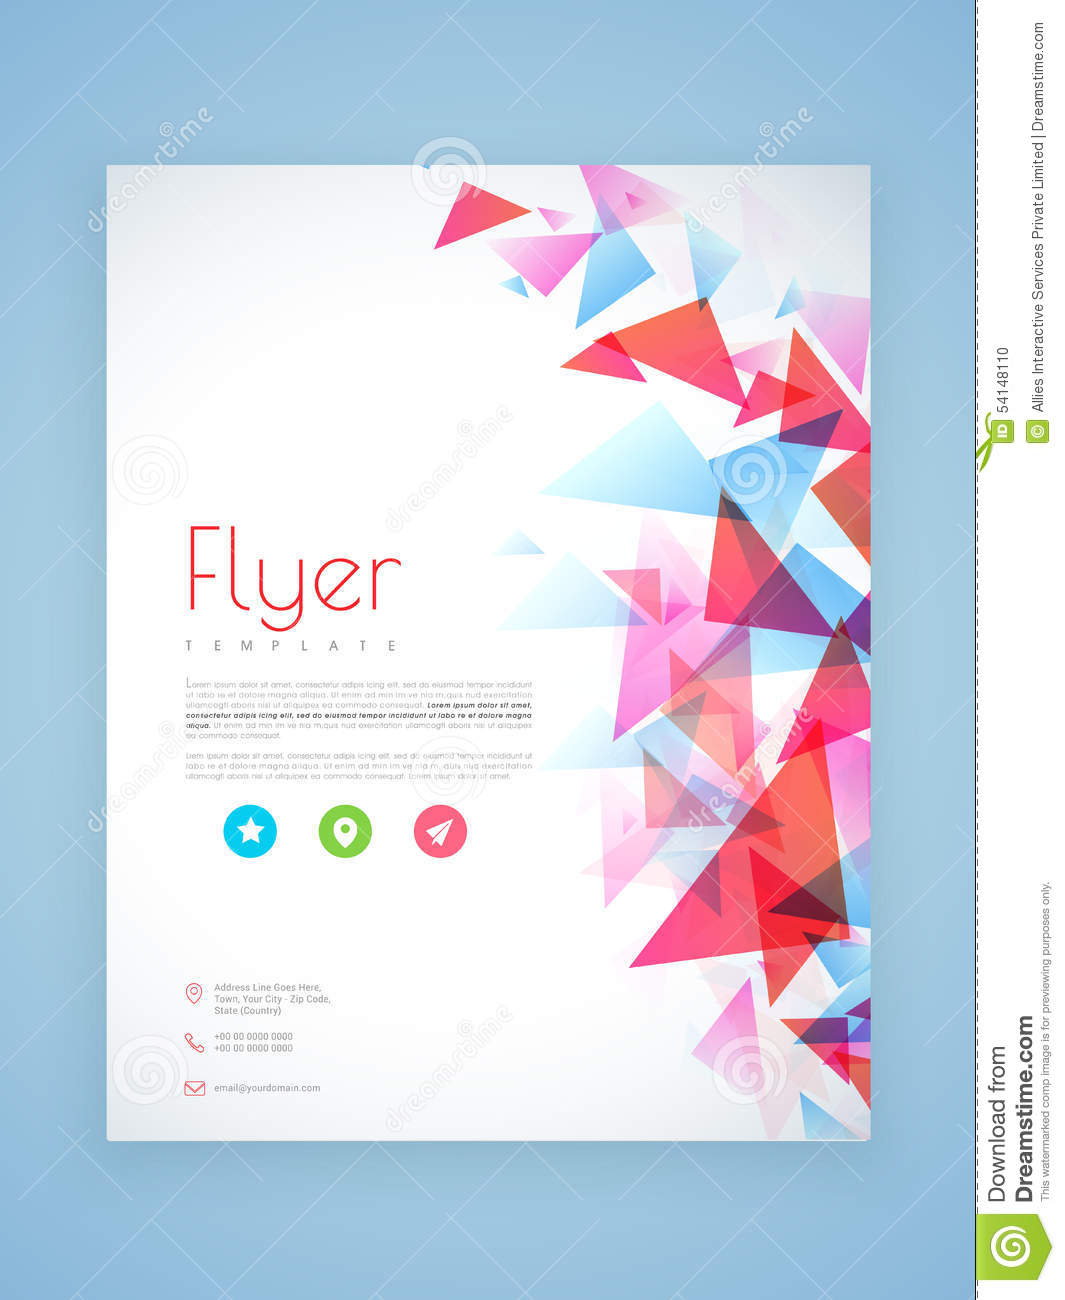 Professional Flyer, Template Or Brochure Design. Stock Illustration ...